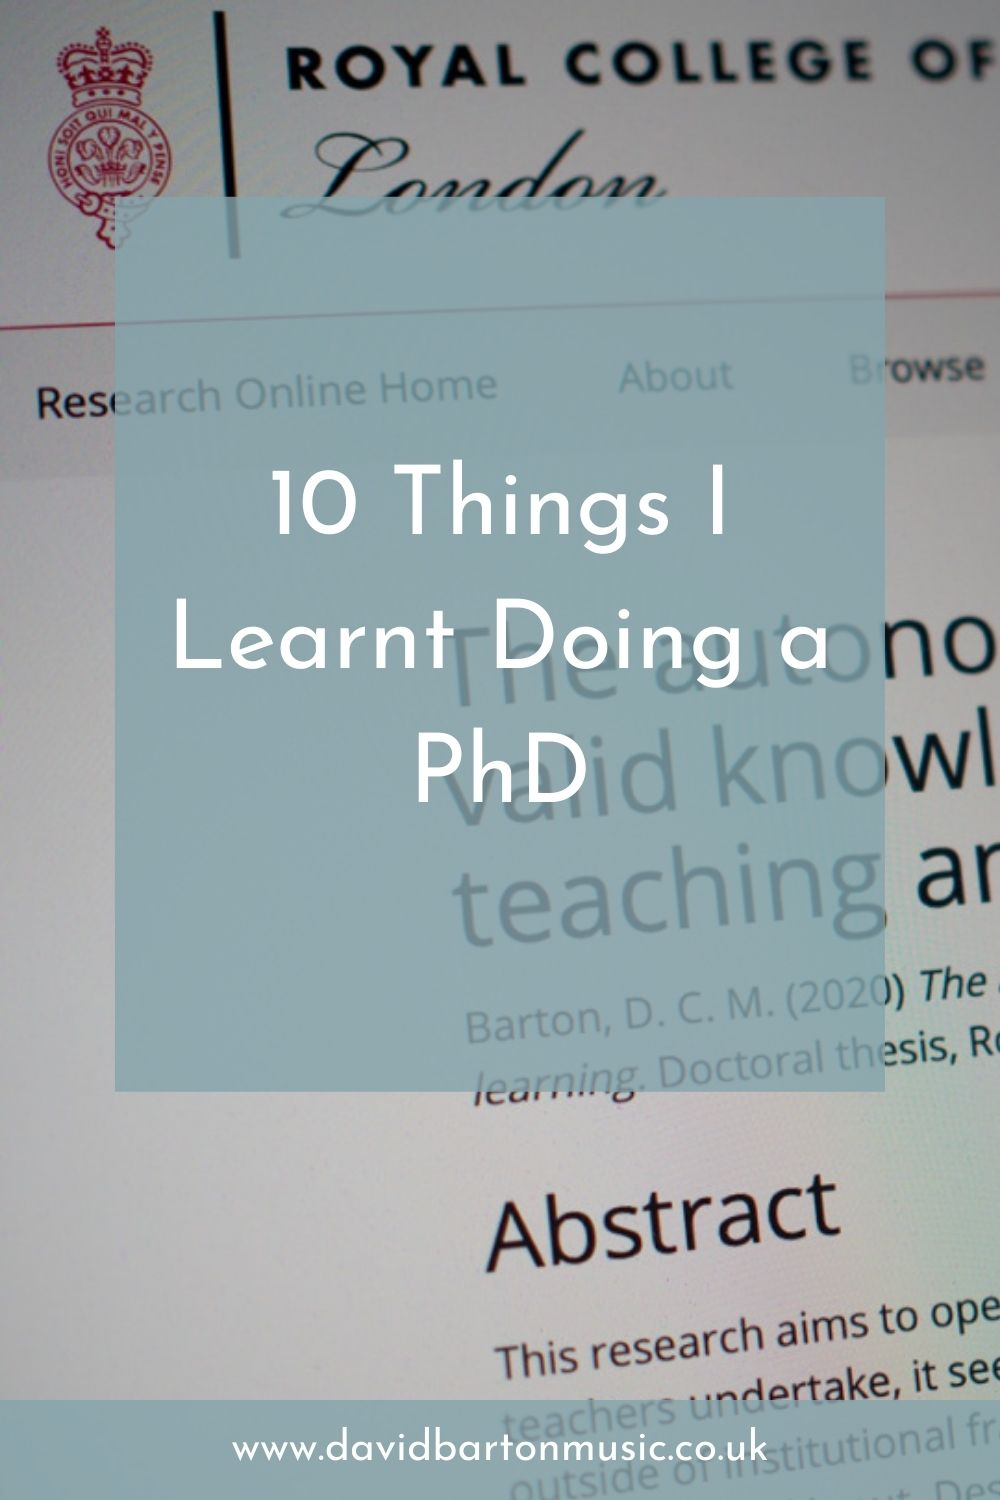 10 Things I Learnt Doing a PhD - Pinterest graphic.